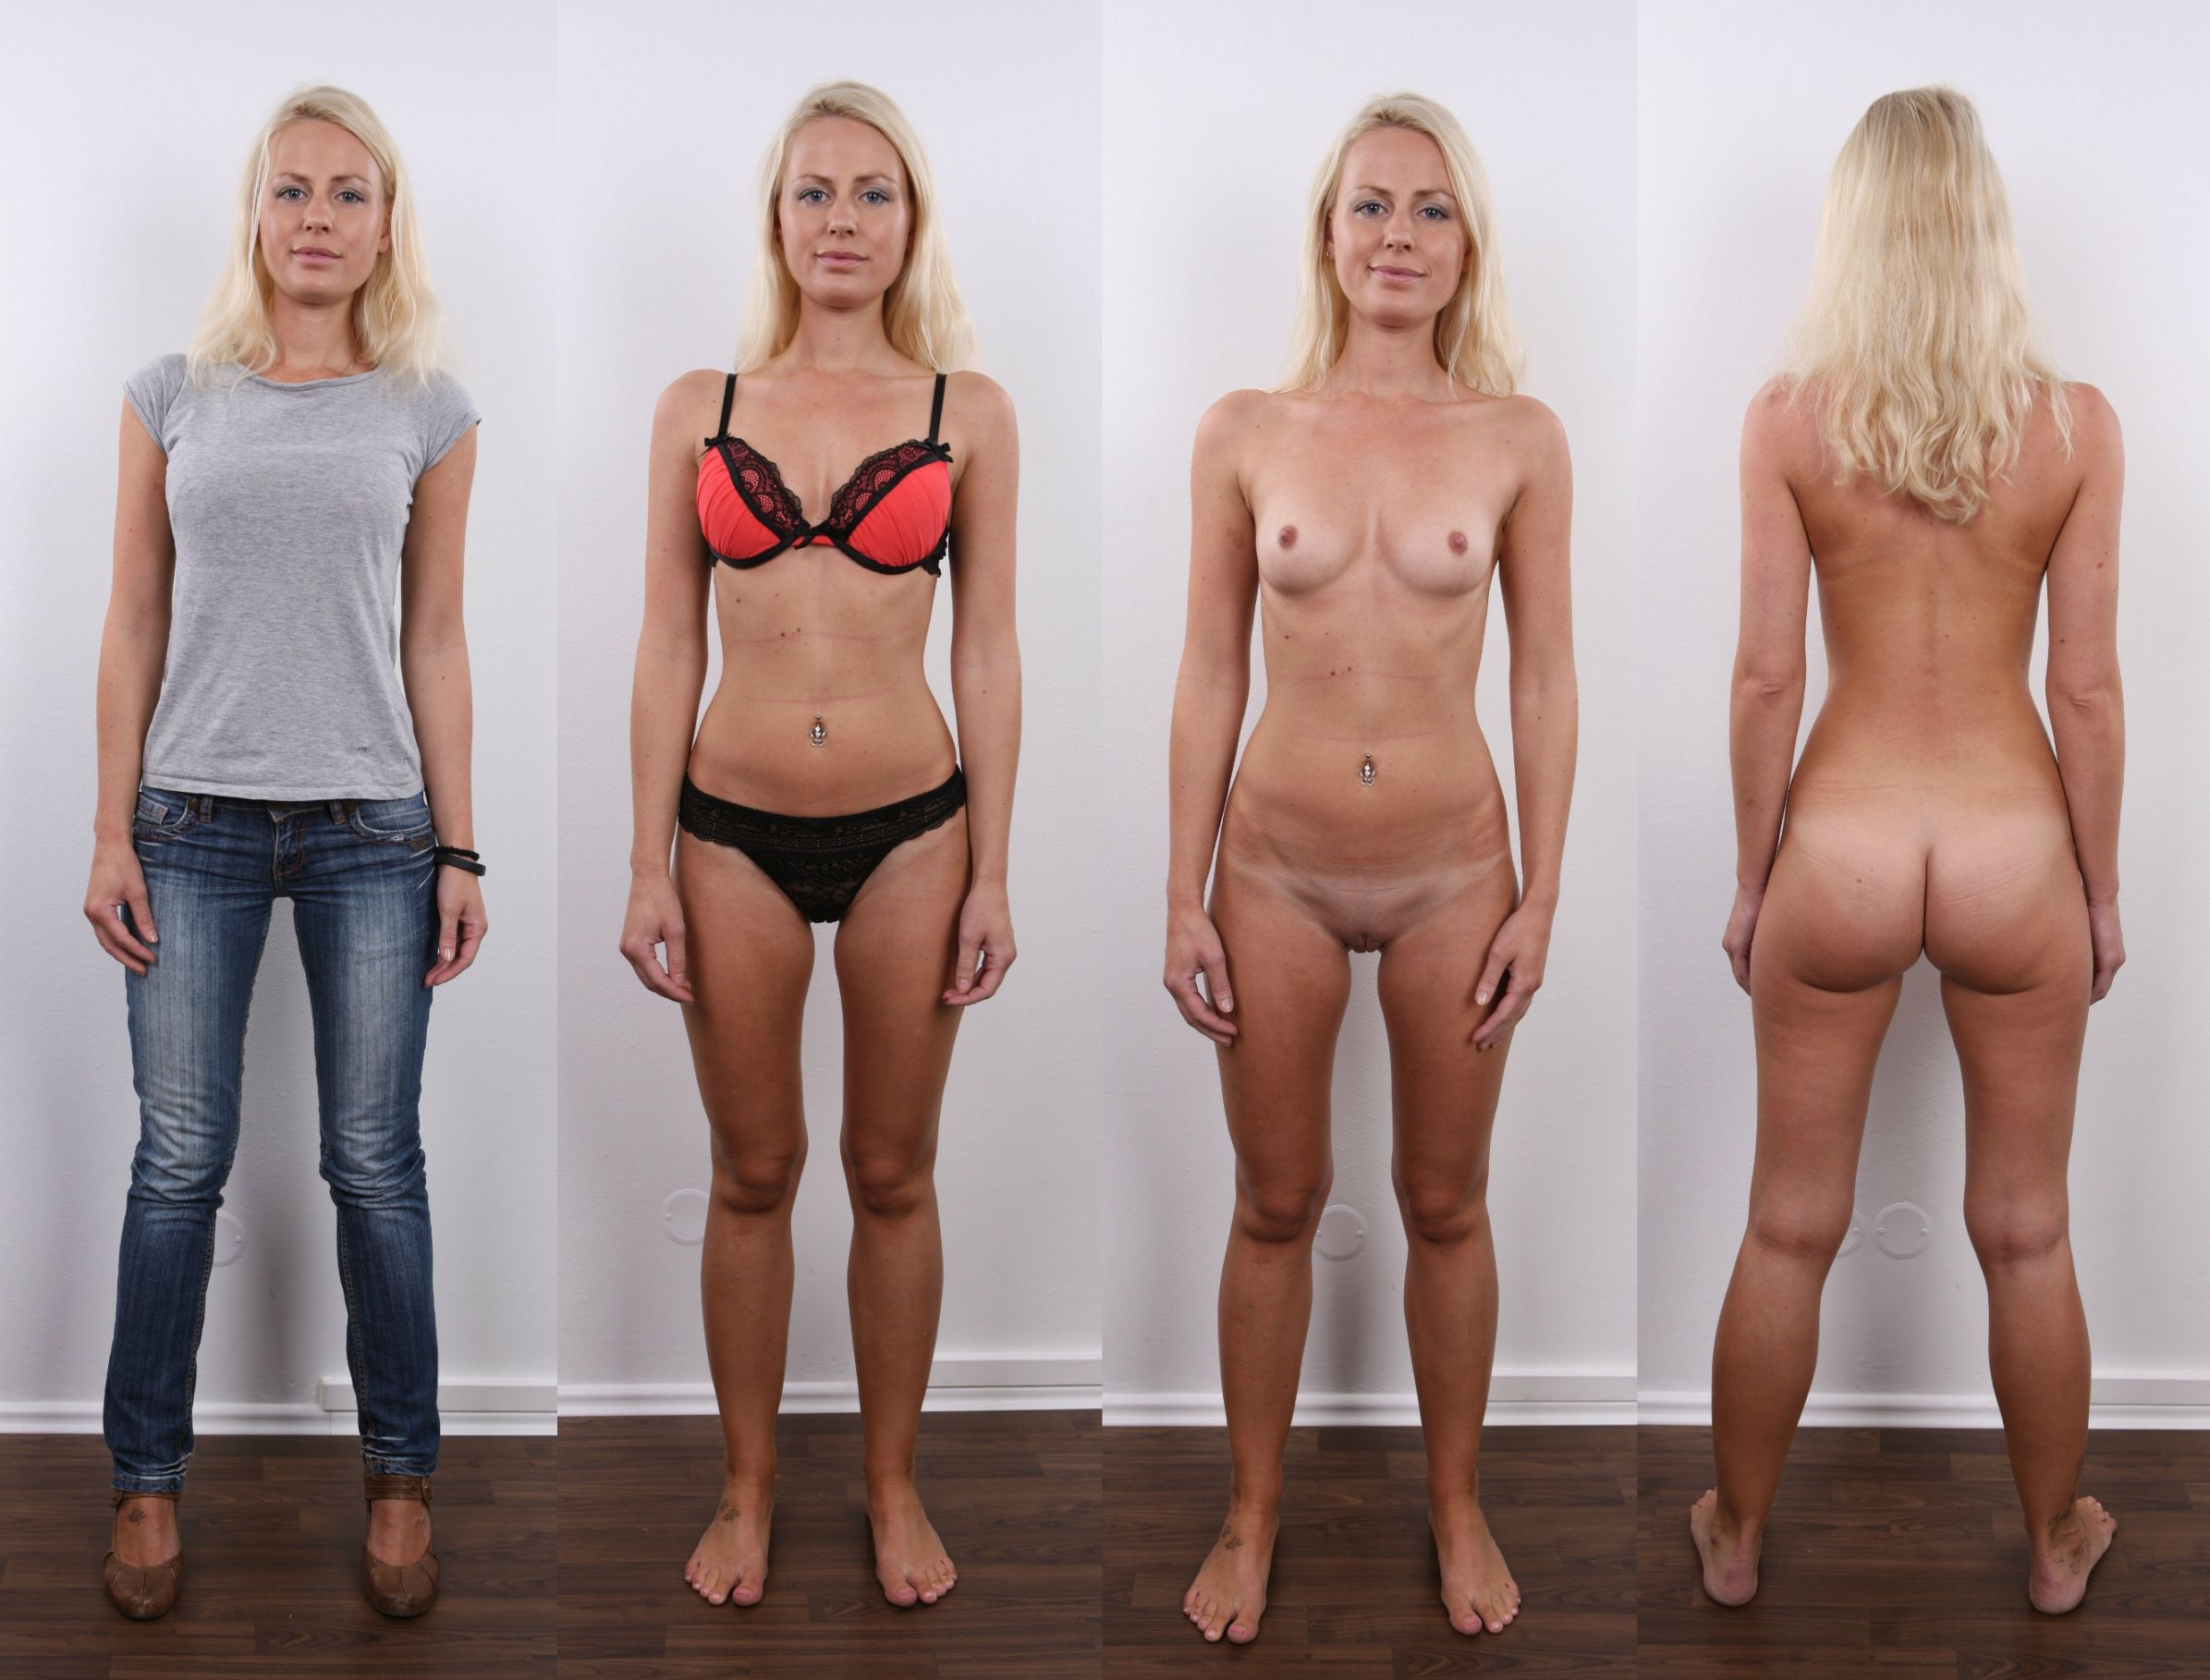 Women clothed nude and CFNM Porn